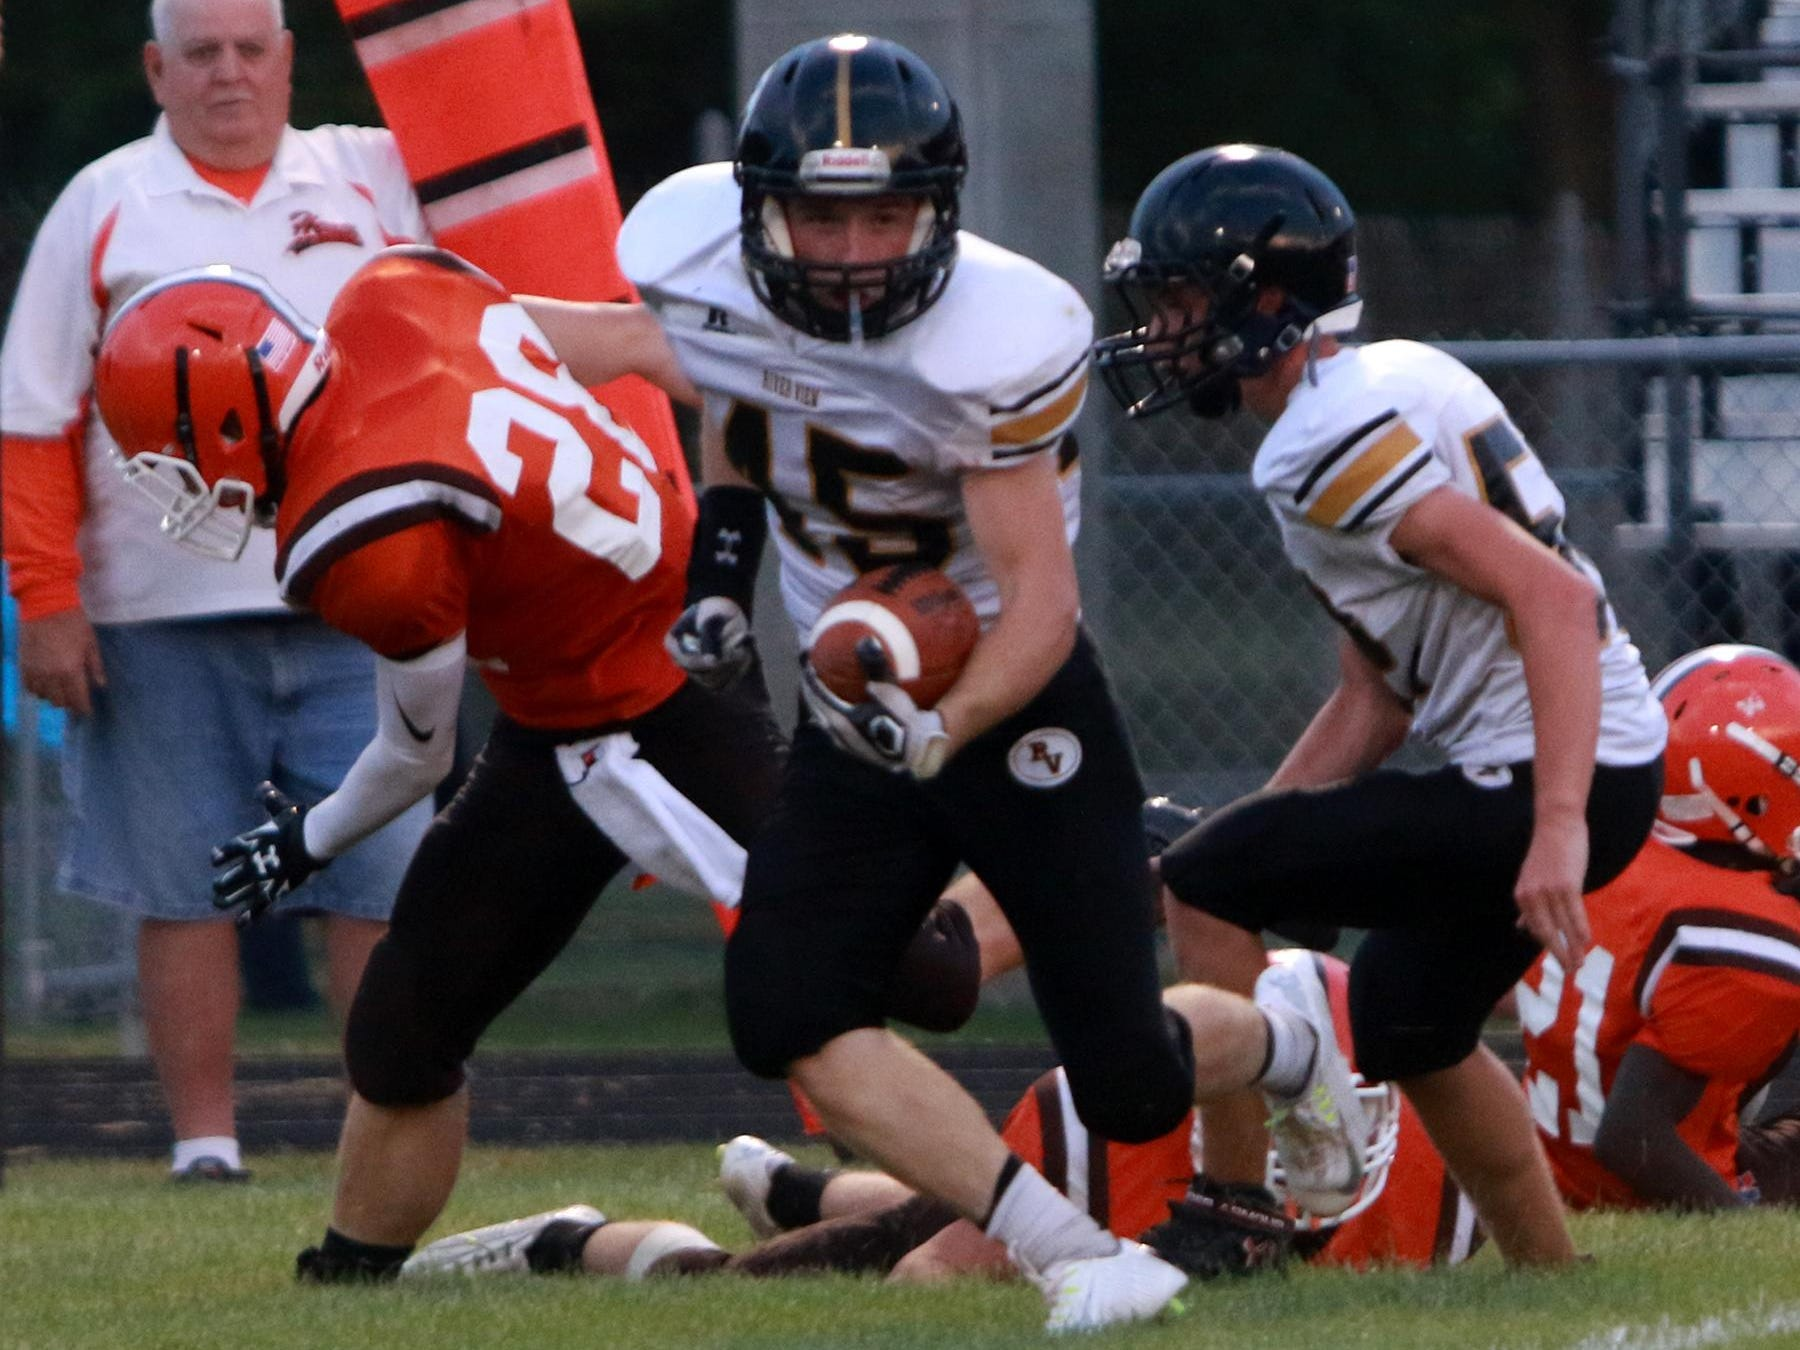 Wide receiver, Cameron Fetzer, runs with the ball in the season open at Heath. The Black Bears lost to the Bulldogs 42-0.